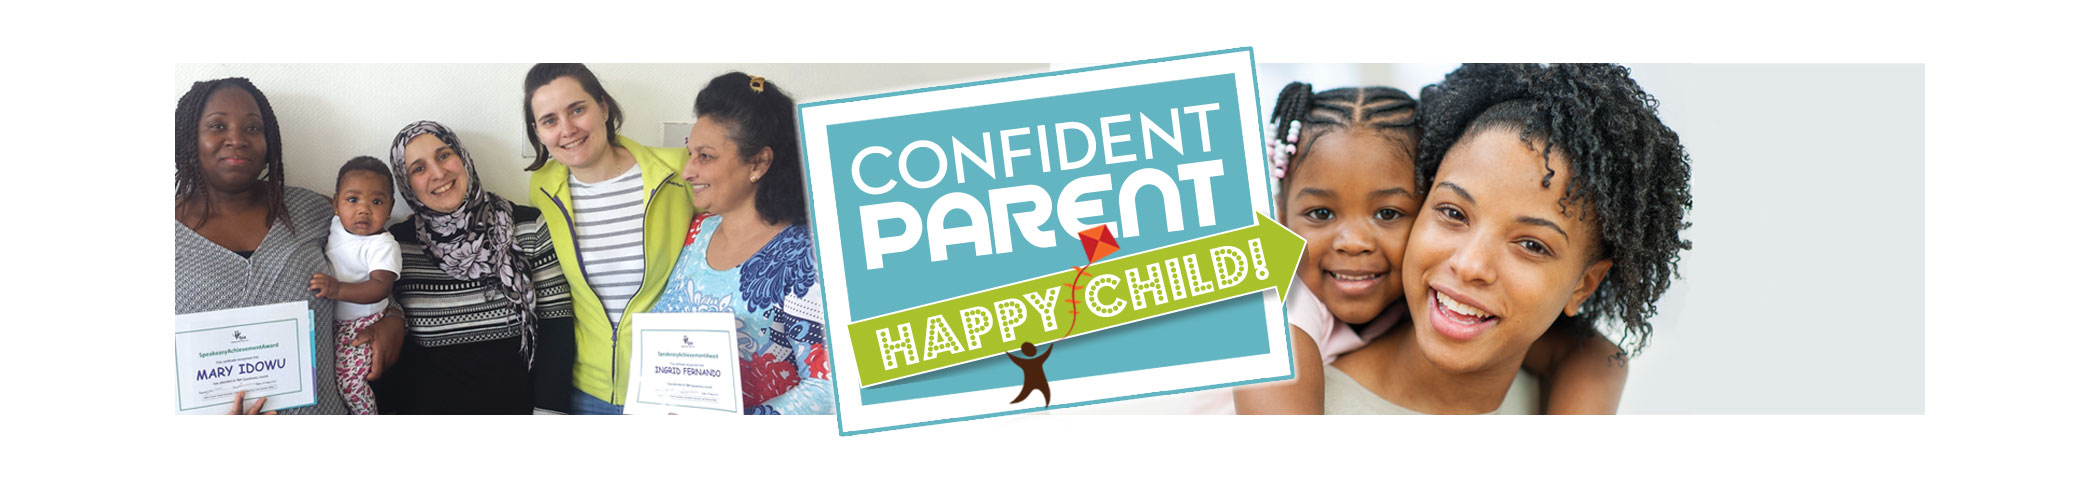 Masbro Confident Parent Happy Child page iphone banner